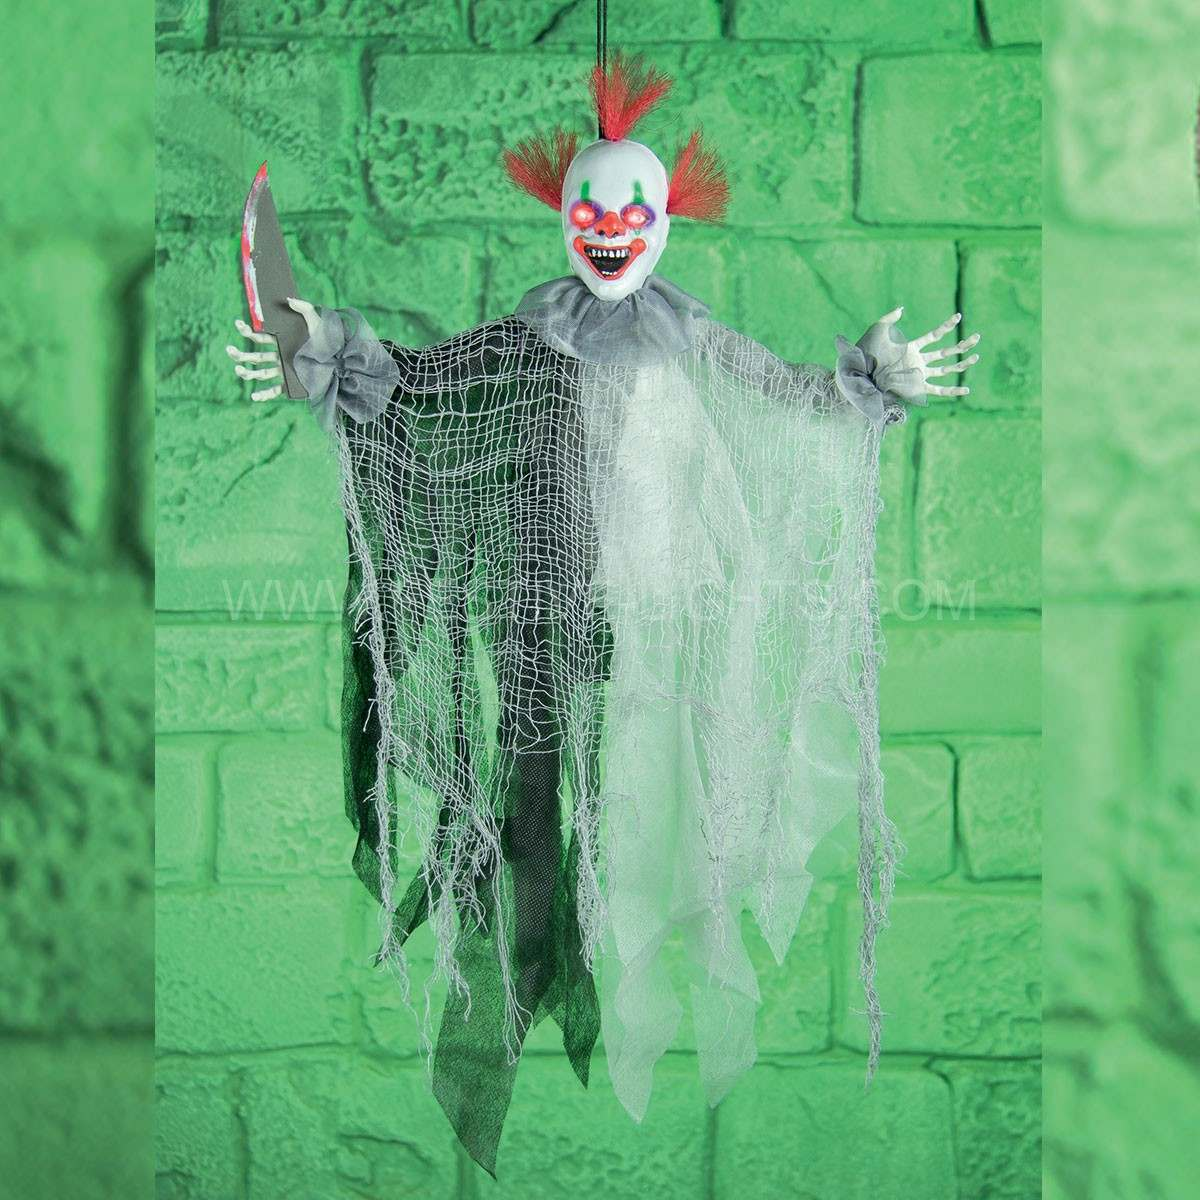 61cm Battery Animated Hanging Light up Clown with Knife Movement & Sound